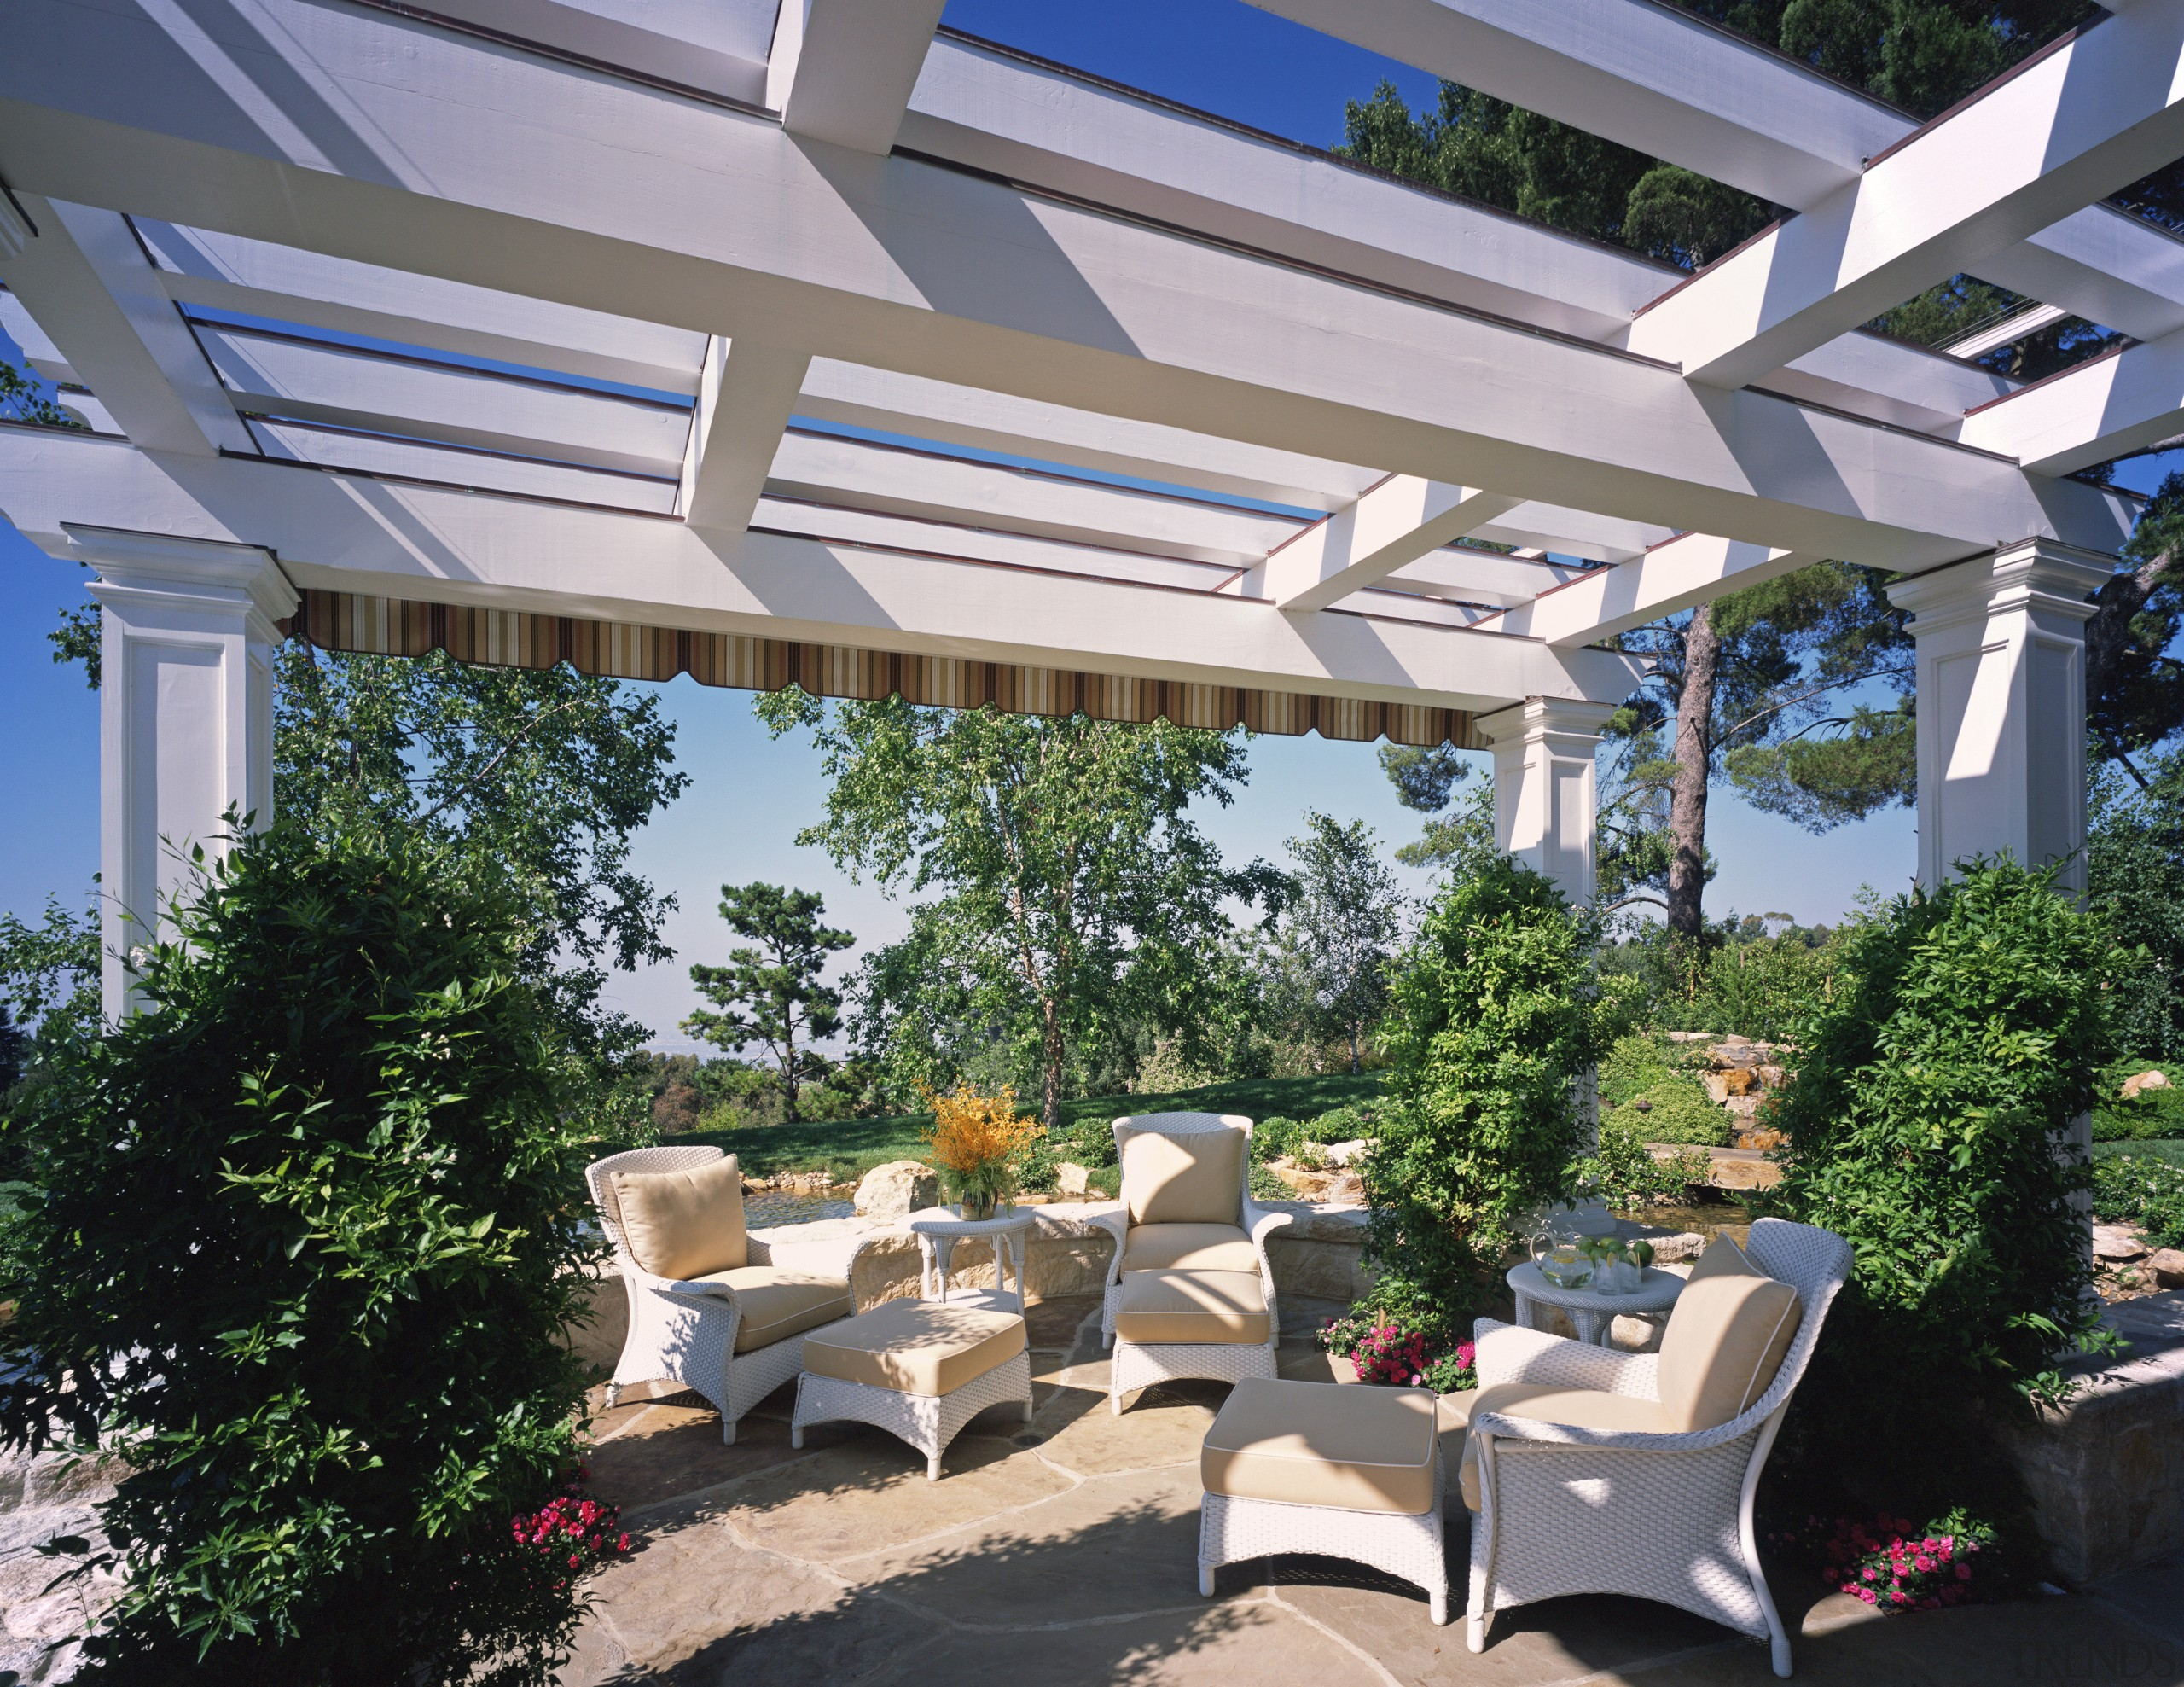 Outdoor living area features pergola & furniture canopy, outdoor structure, patio, pergola, real estate, roof, shade, gray